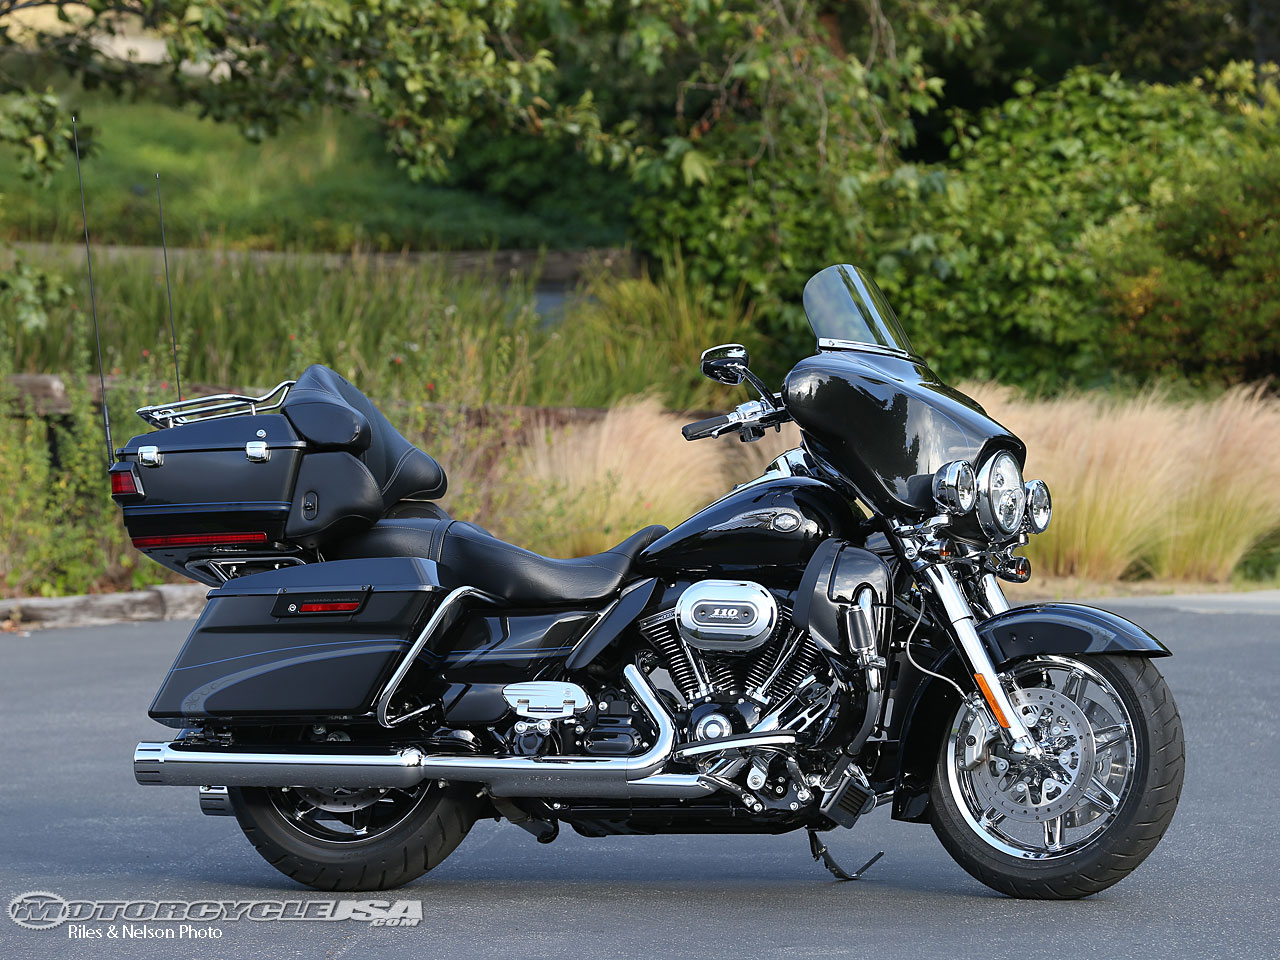 Harley-Davidson FLHTC Electra Glide Classic 2013 pics #19889